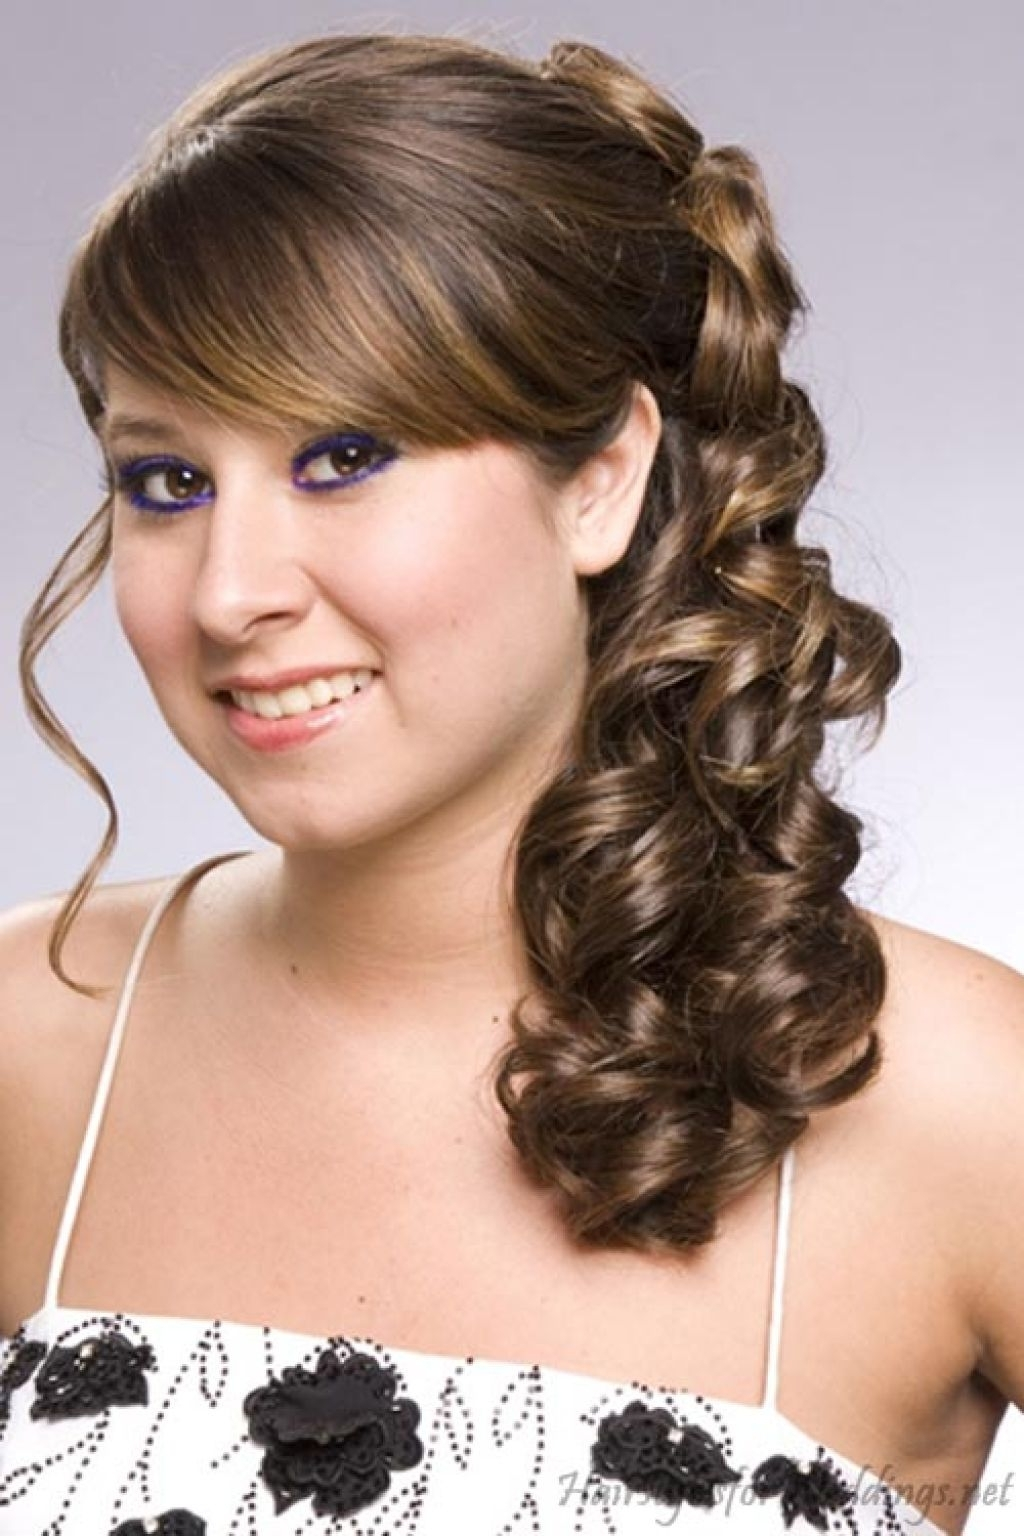 Women Hairstyle Prom Hairstyles Curly Down And Cute Formal Hair For With Regard To Popular Wedding Hairstyles For Short Length Hair Down (View 15 of 15)